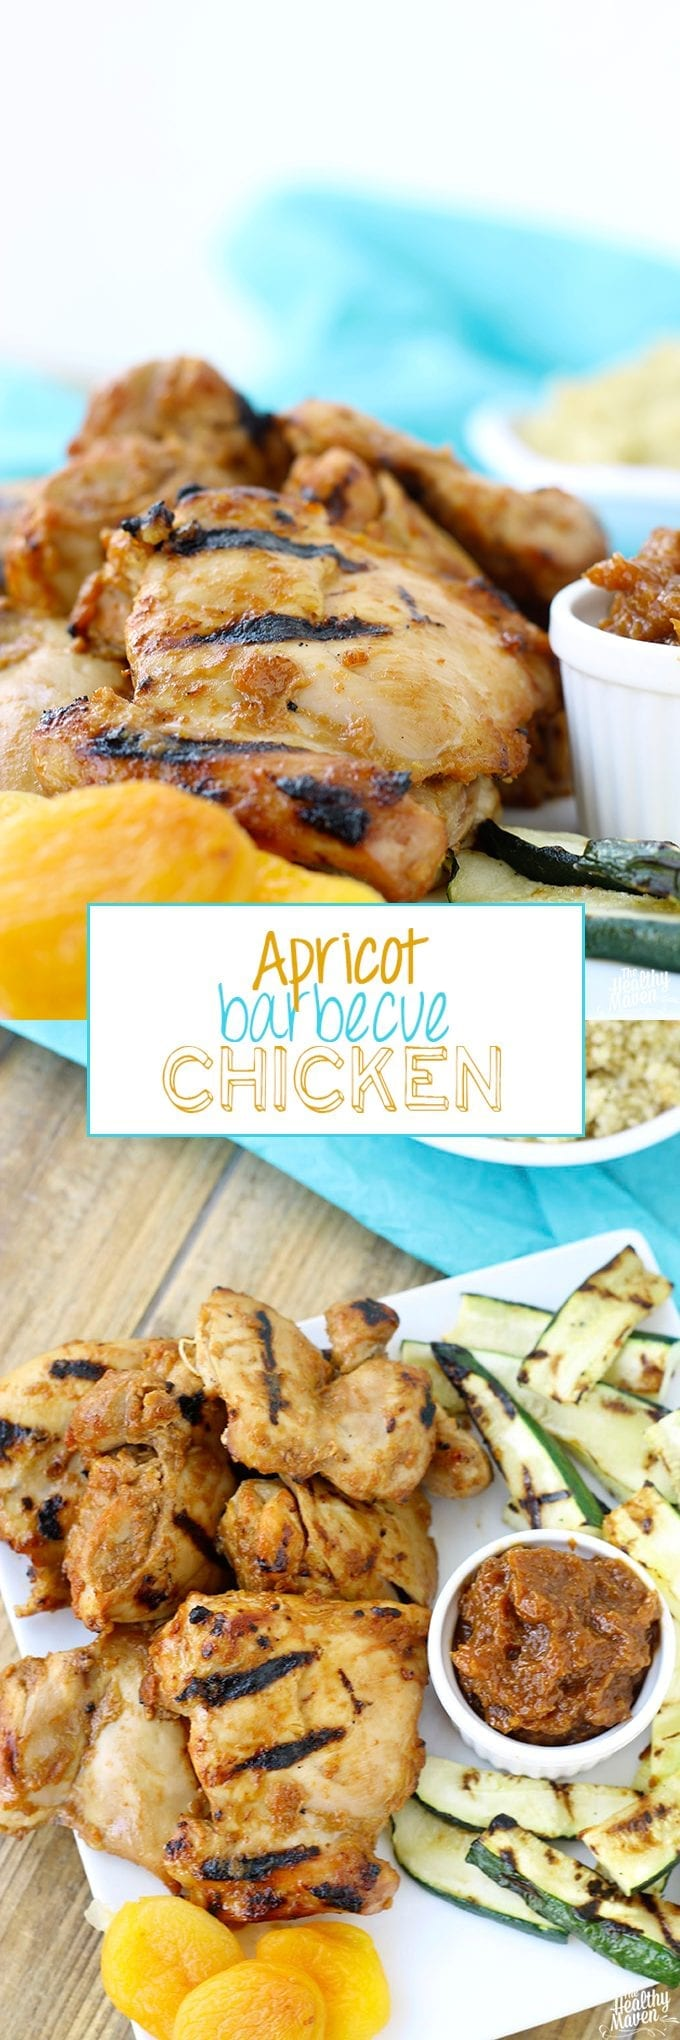 This Apricot Barbecue Chicken is a tangy and sweet chicken recipe for the grill that you'll find yourself eating all summer long. It's made from dried apricots rather than sugar-laden jam!